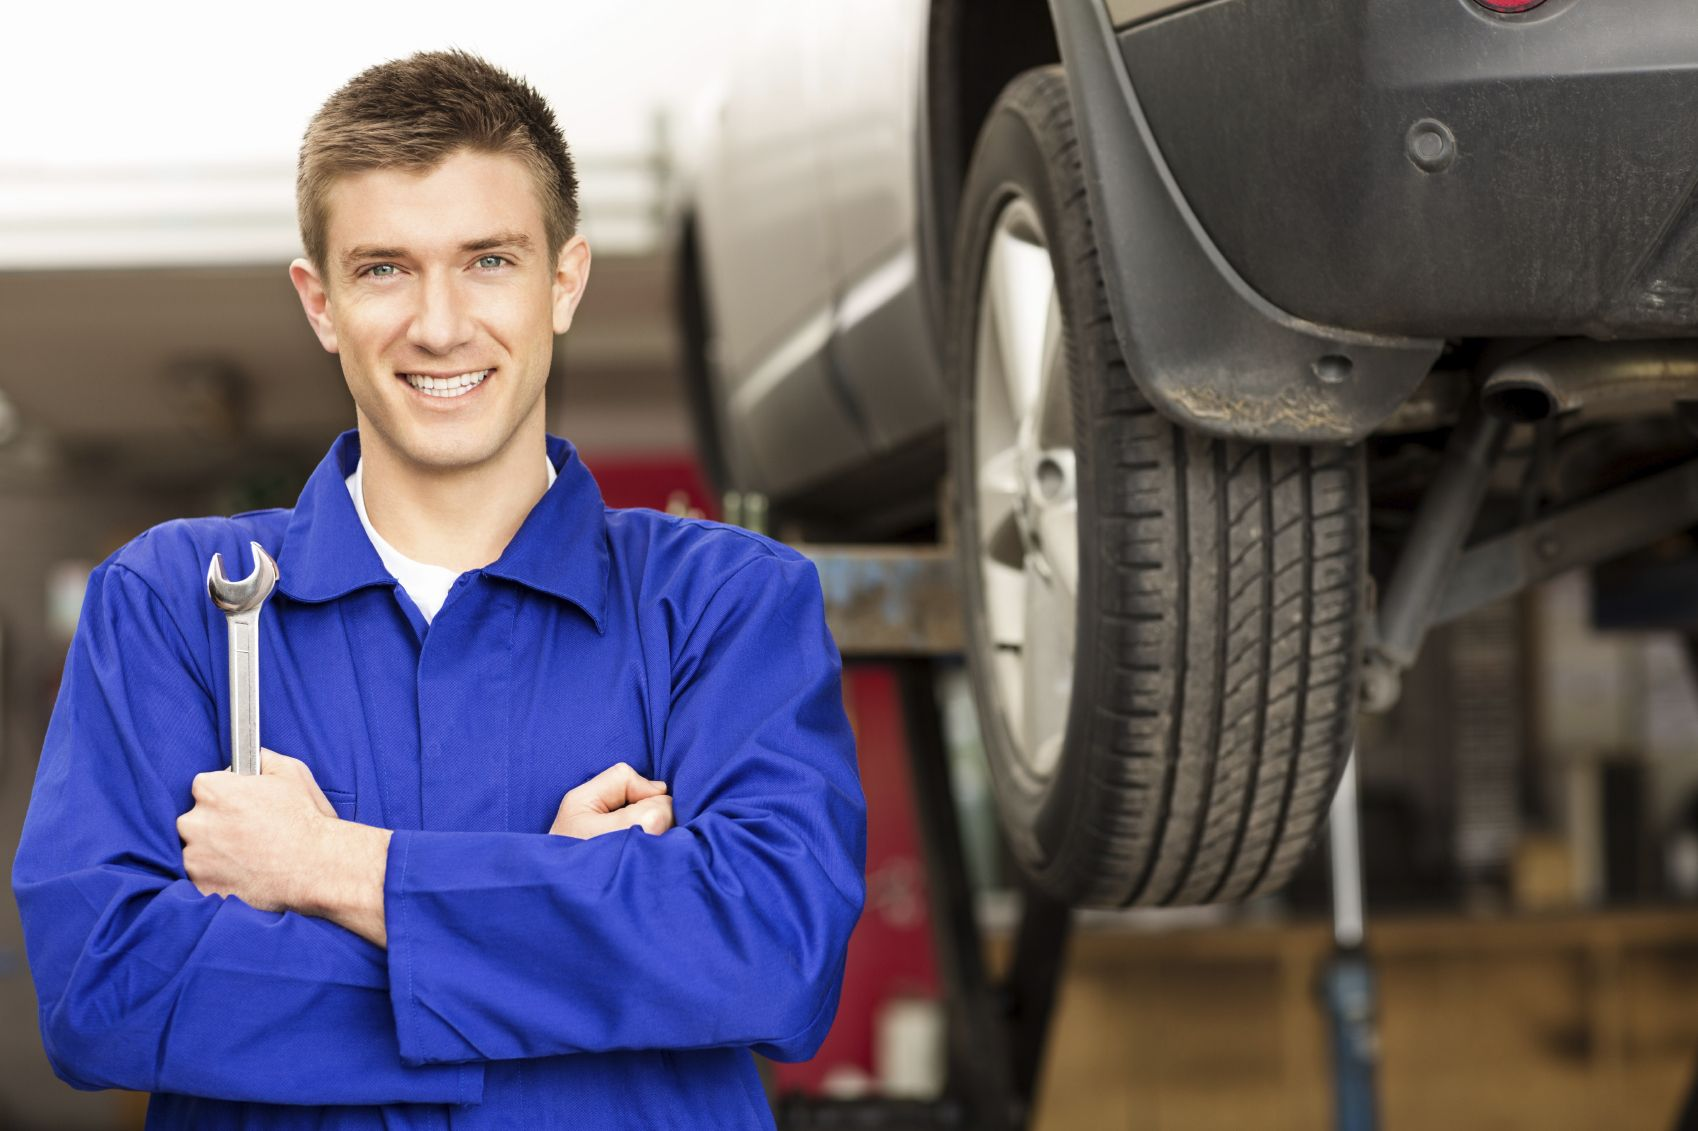 Get Best Mobile Car Mechanic And Vehicle Repair Service In London At Affordable Price Find The Best Mobile Vehicle Repair Servi Car Mechanic New Cars Mechanic